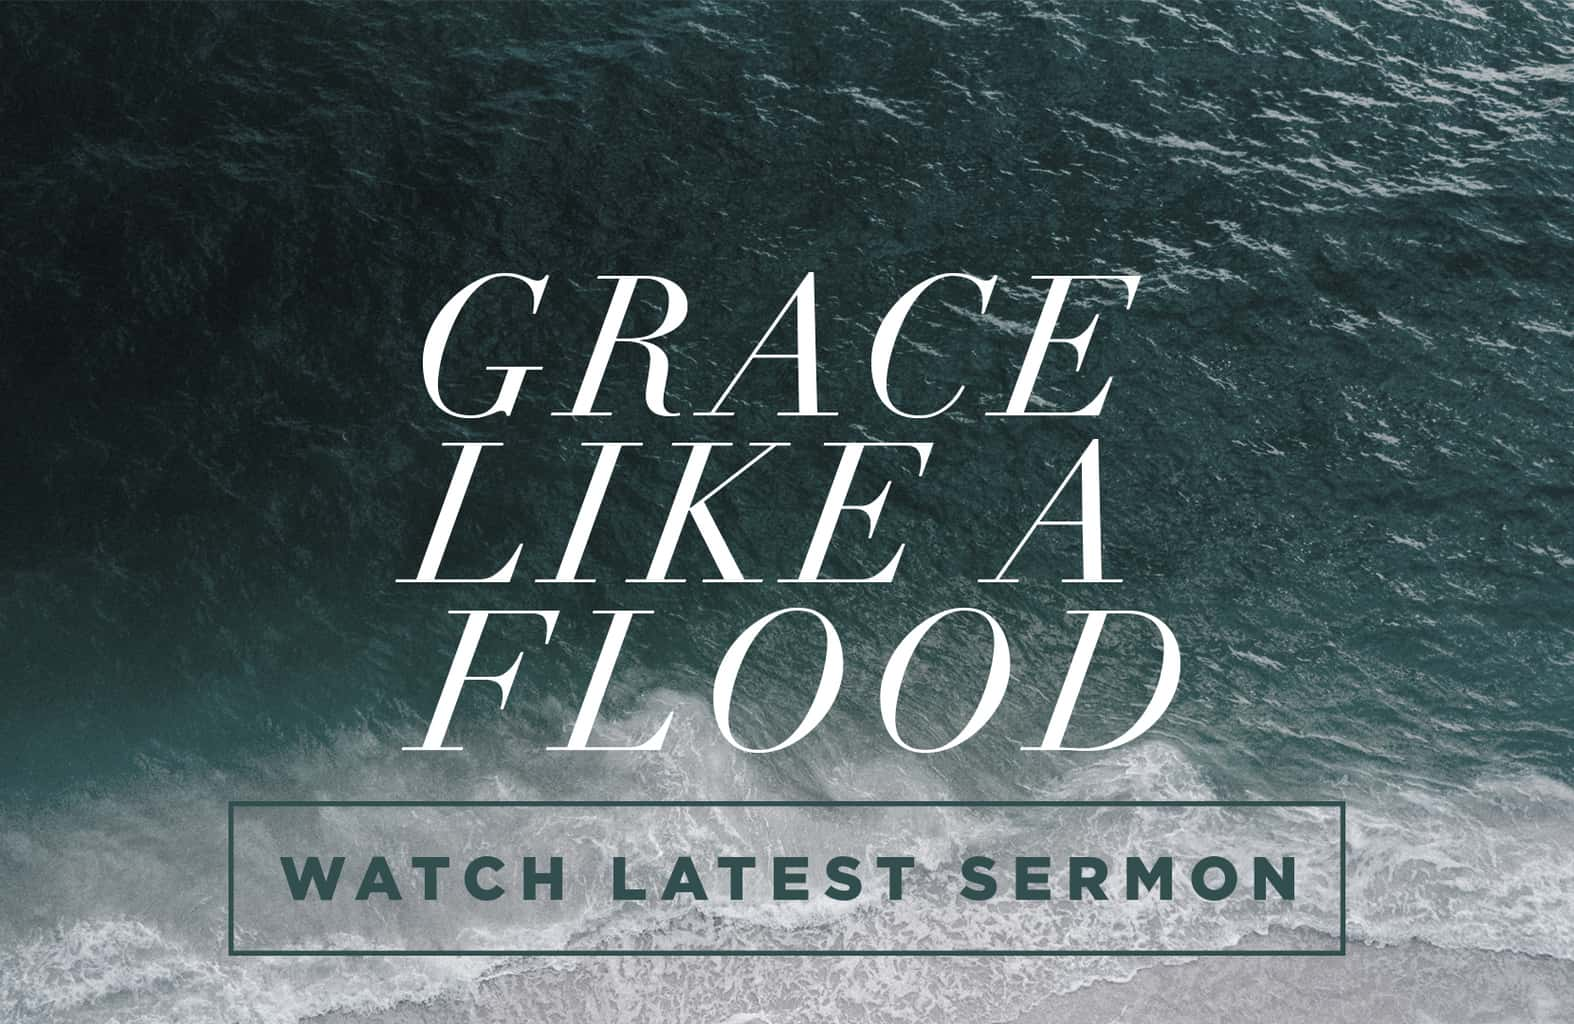 Watch Latest Sermon